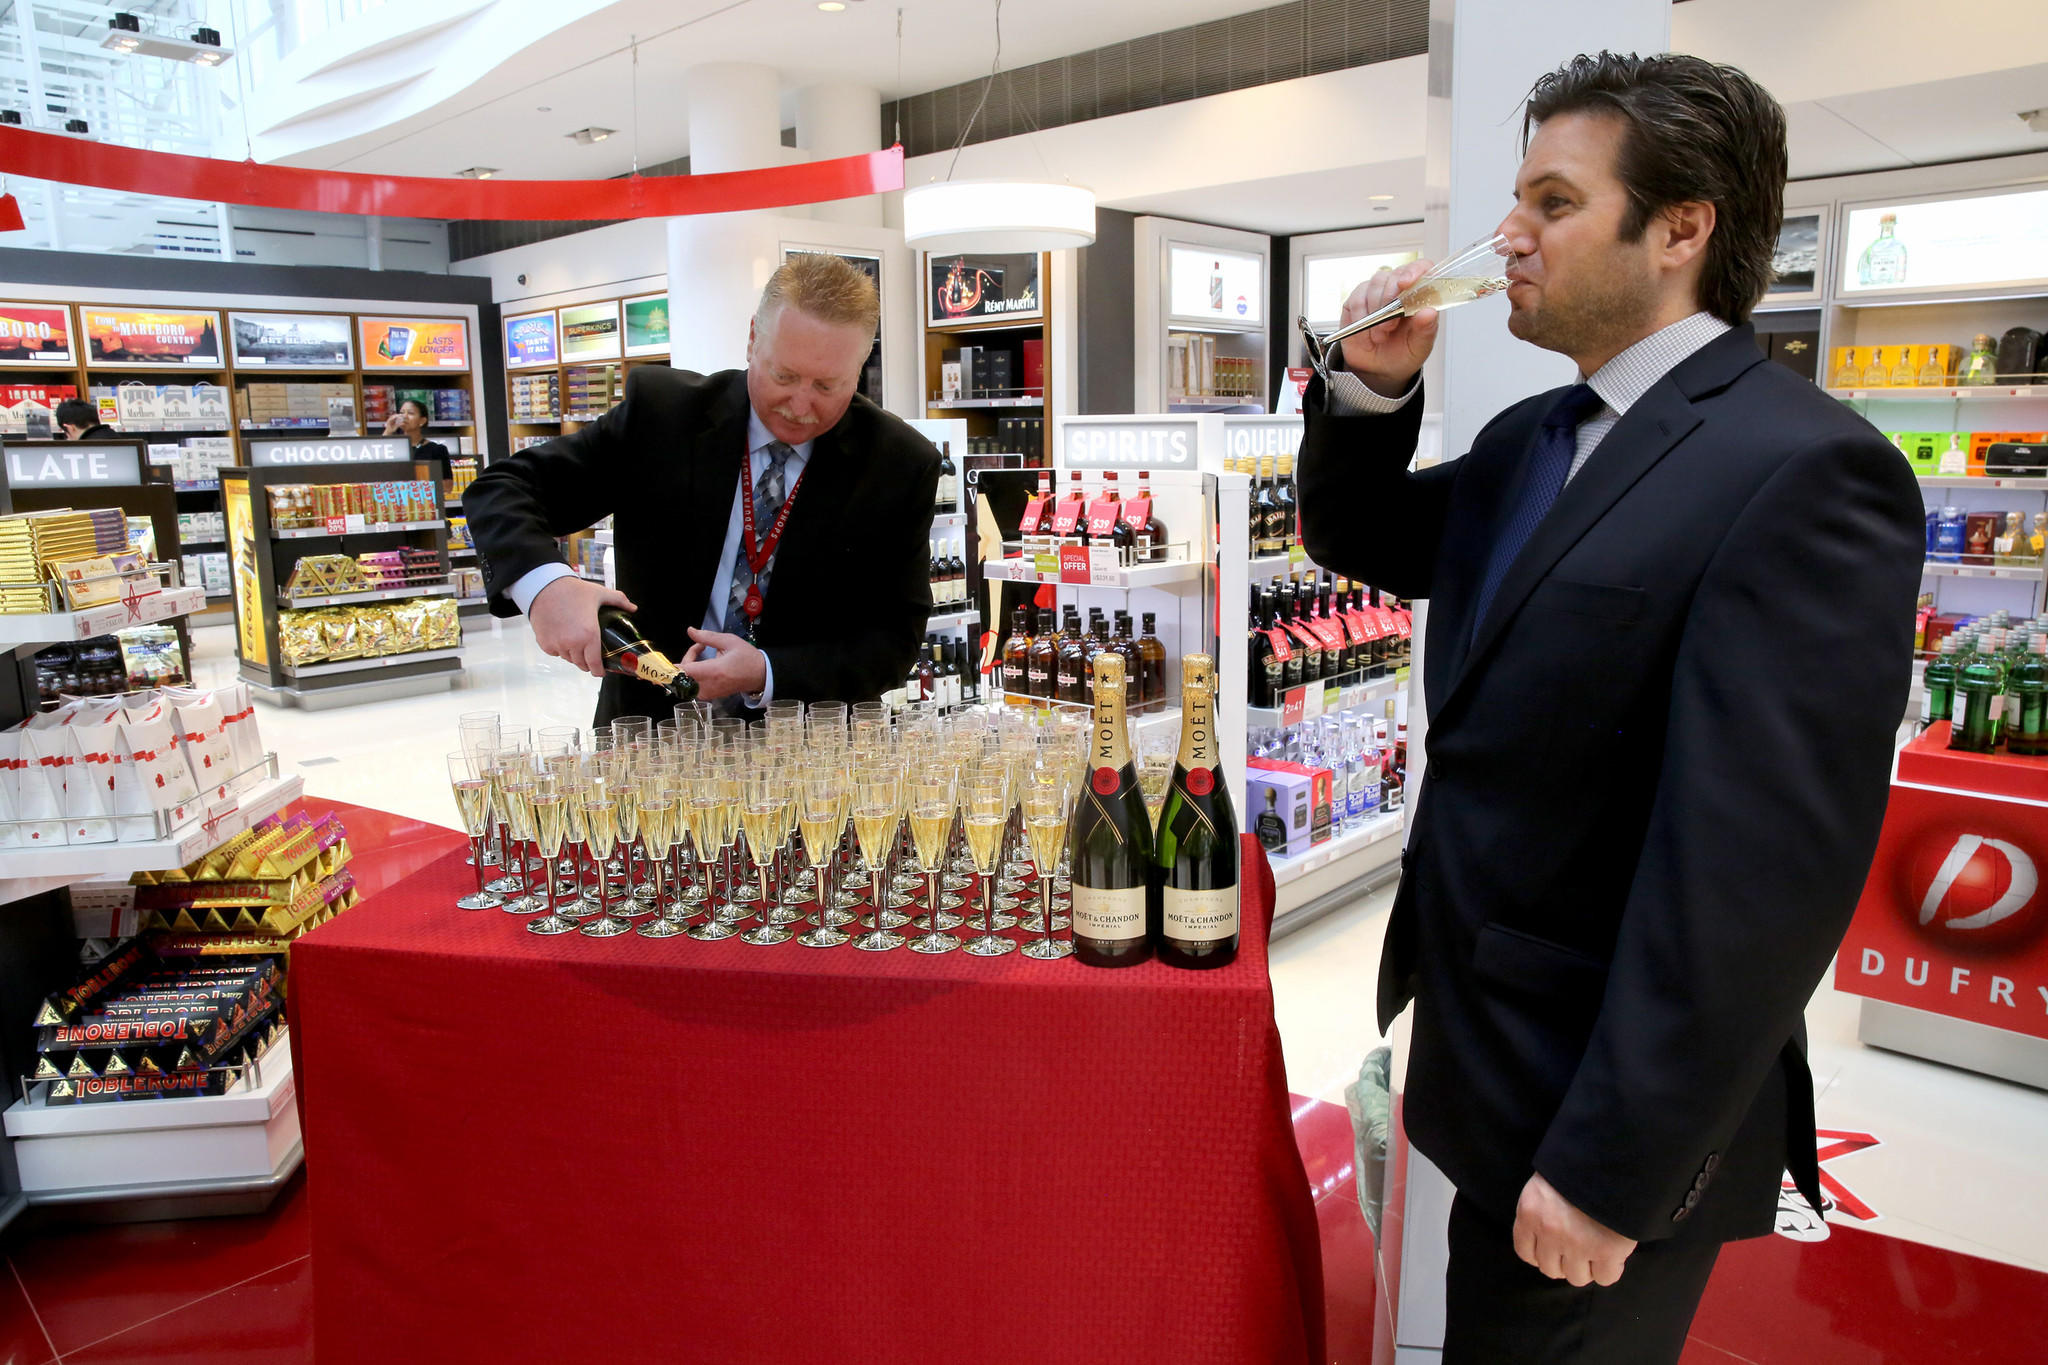 Kenneth Williamson, left, of Dufry serves up the champagne as Christopher Cassettari takes a sip at the new International Terminal 5 (T5) at Chicago O'Hare International Airport.